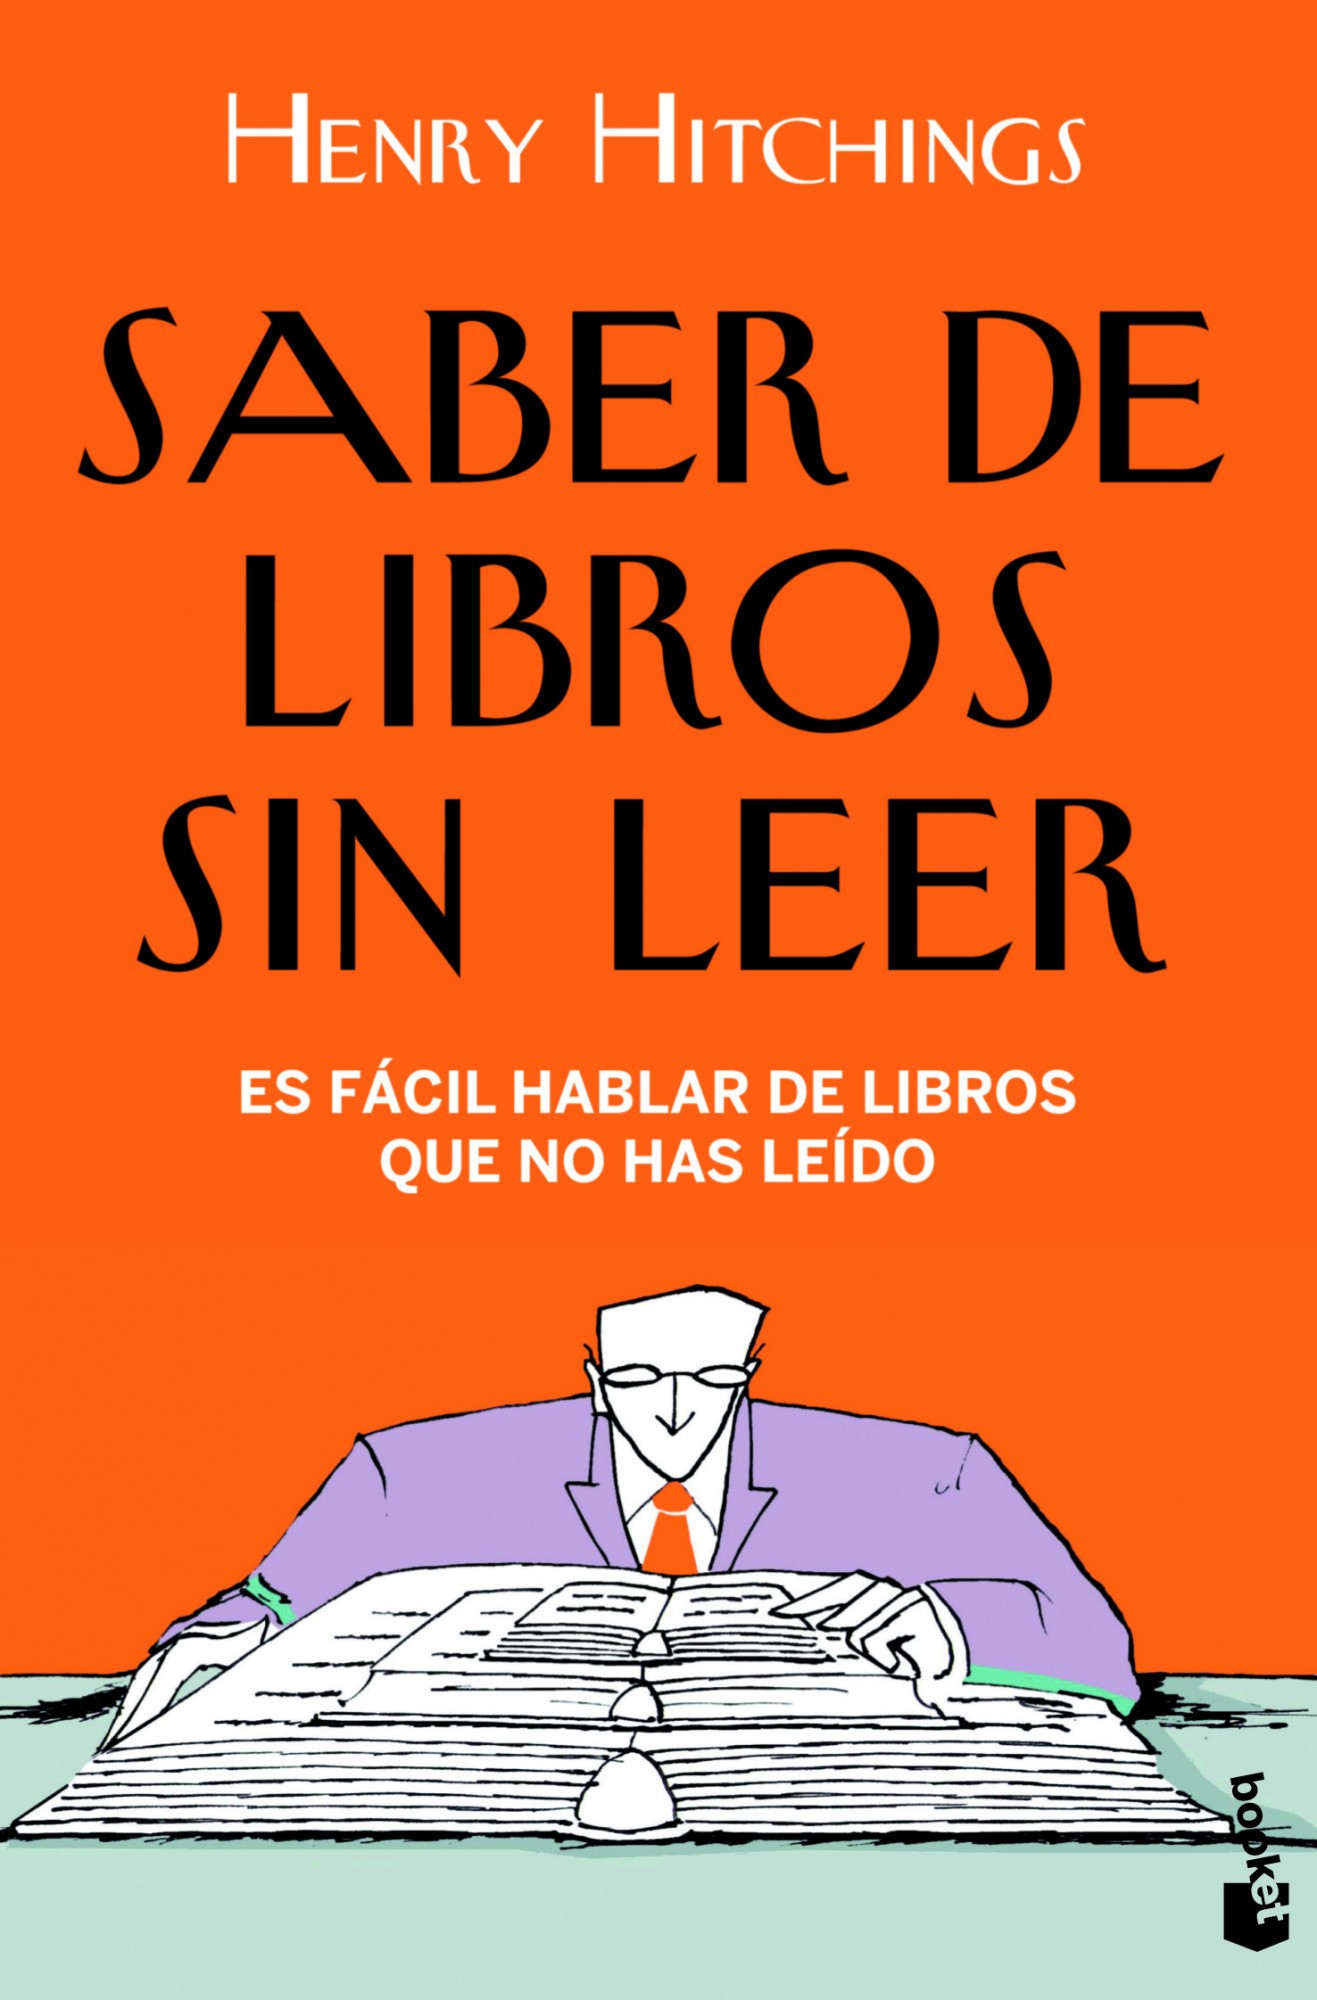 Saber educar hoy